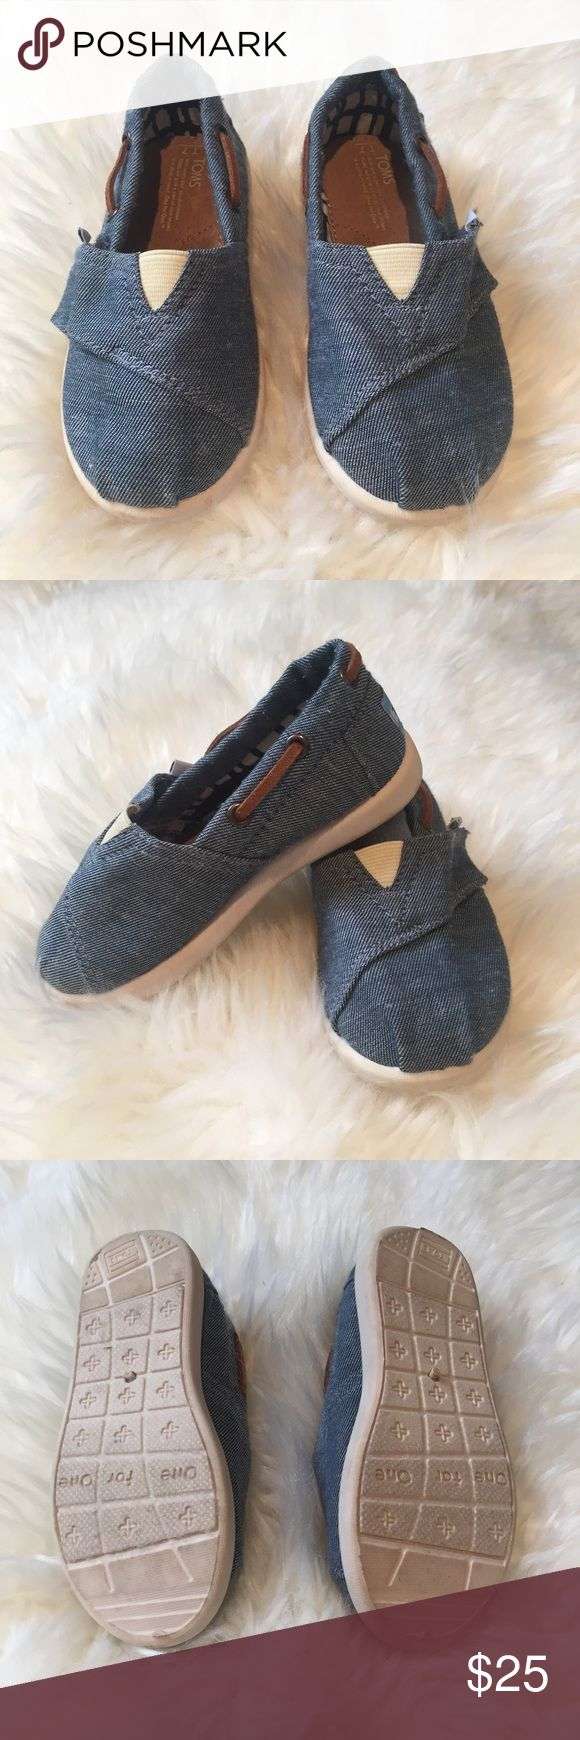 Tiny Toms Biminis Blue chambray. Worn once. No signs of wear, except soles. Slip- one with Velcro closure for adjusted fit. Toms Shoes